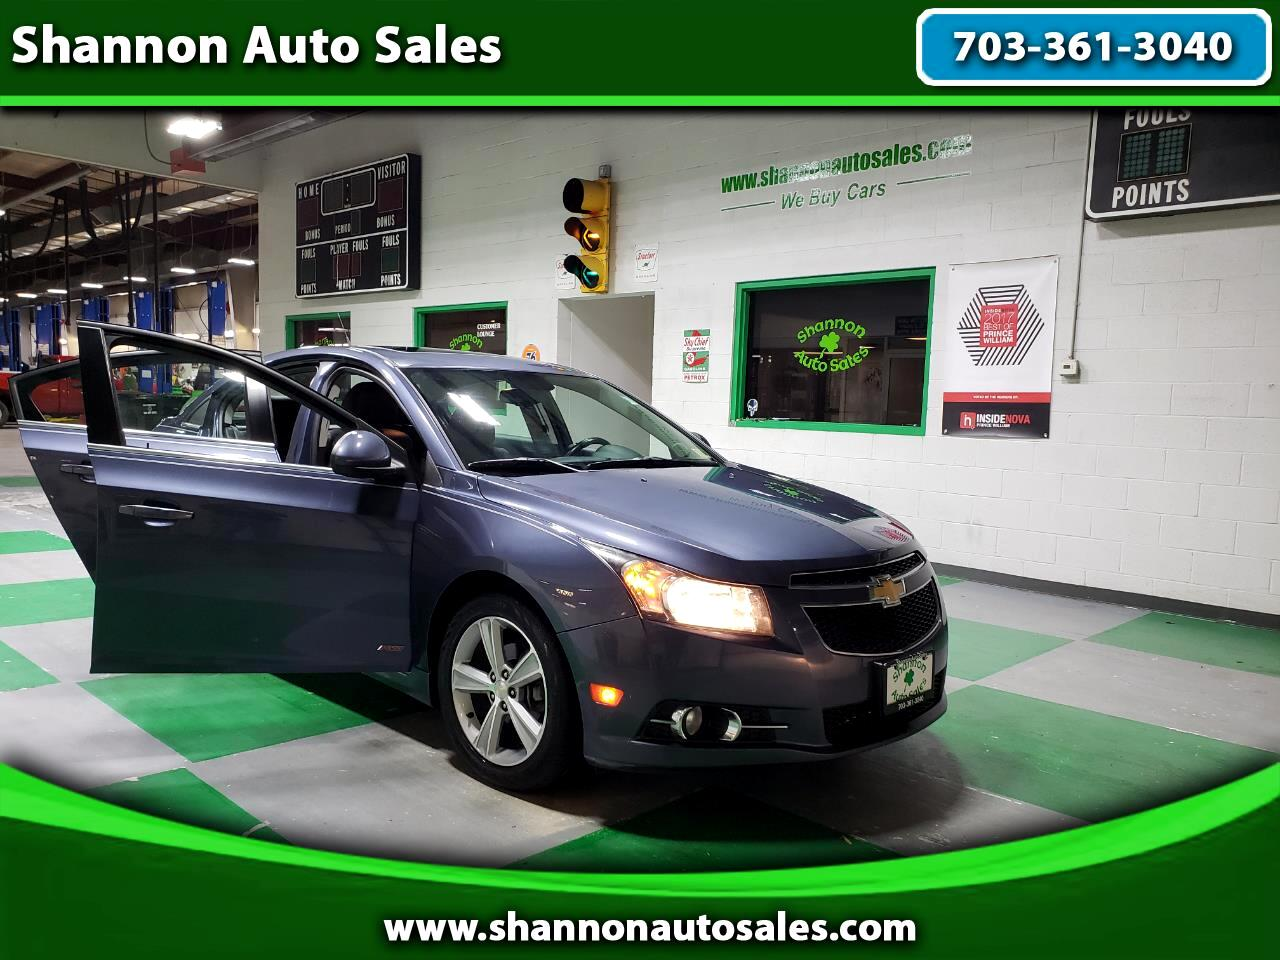 2013 Chevrolet Cruze 4dr Sdn LT/RS Edition